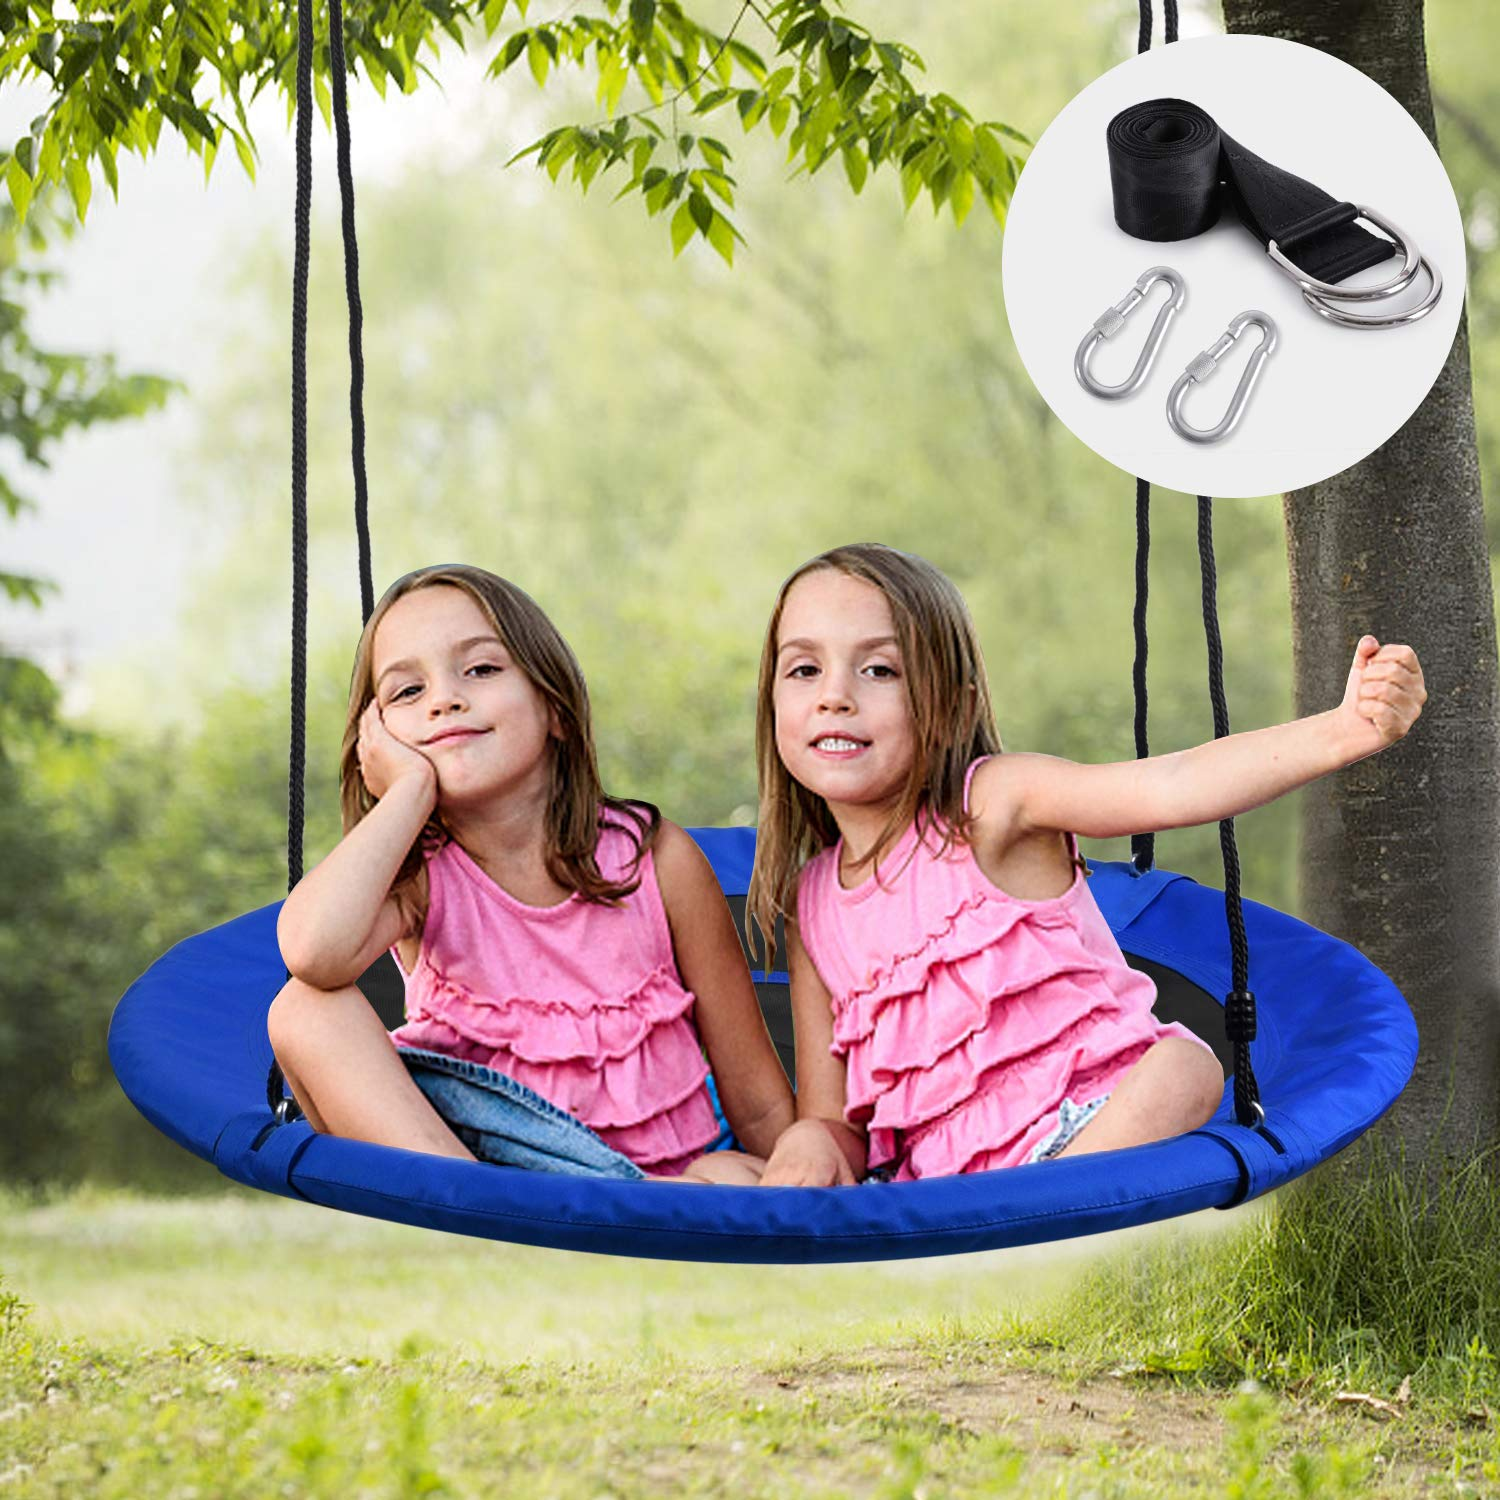 WONDERVIEW Tree Swing, Outdoor Swing with Hanging Strap Kit, 40 Inch Diameter 600lb Weight Capacity, Great for Playground Swing, Backyard and Playroom by WONDERVIEW